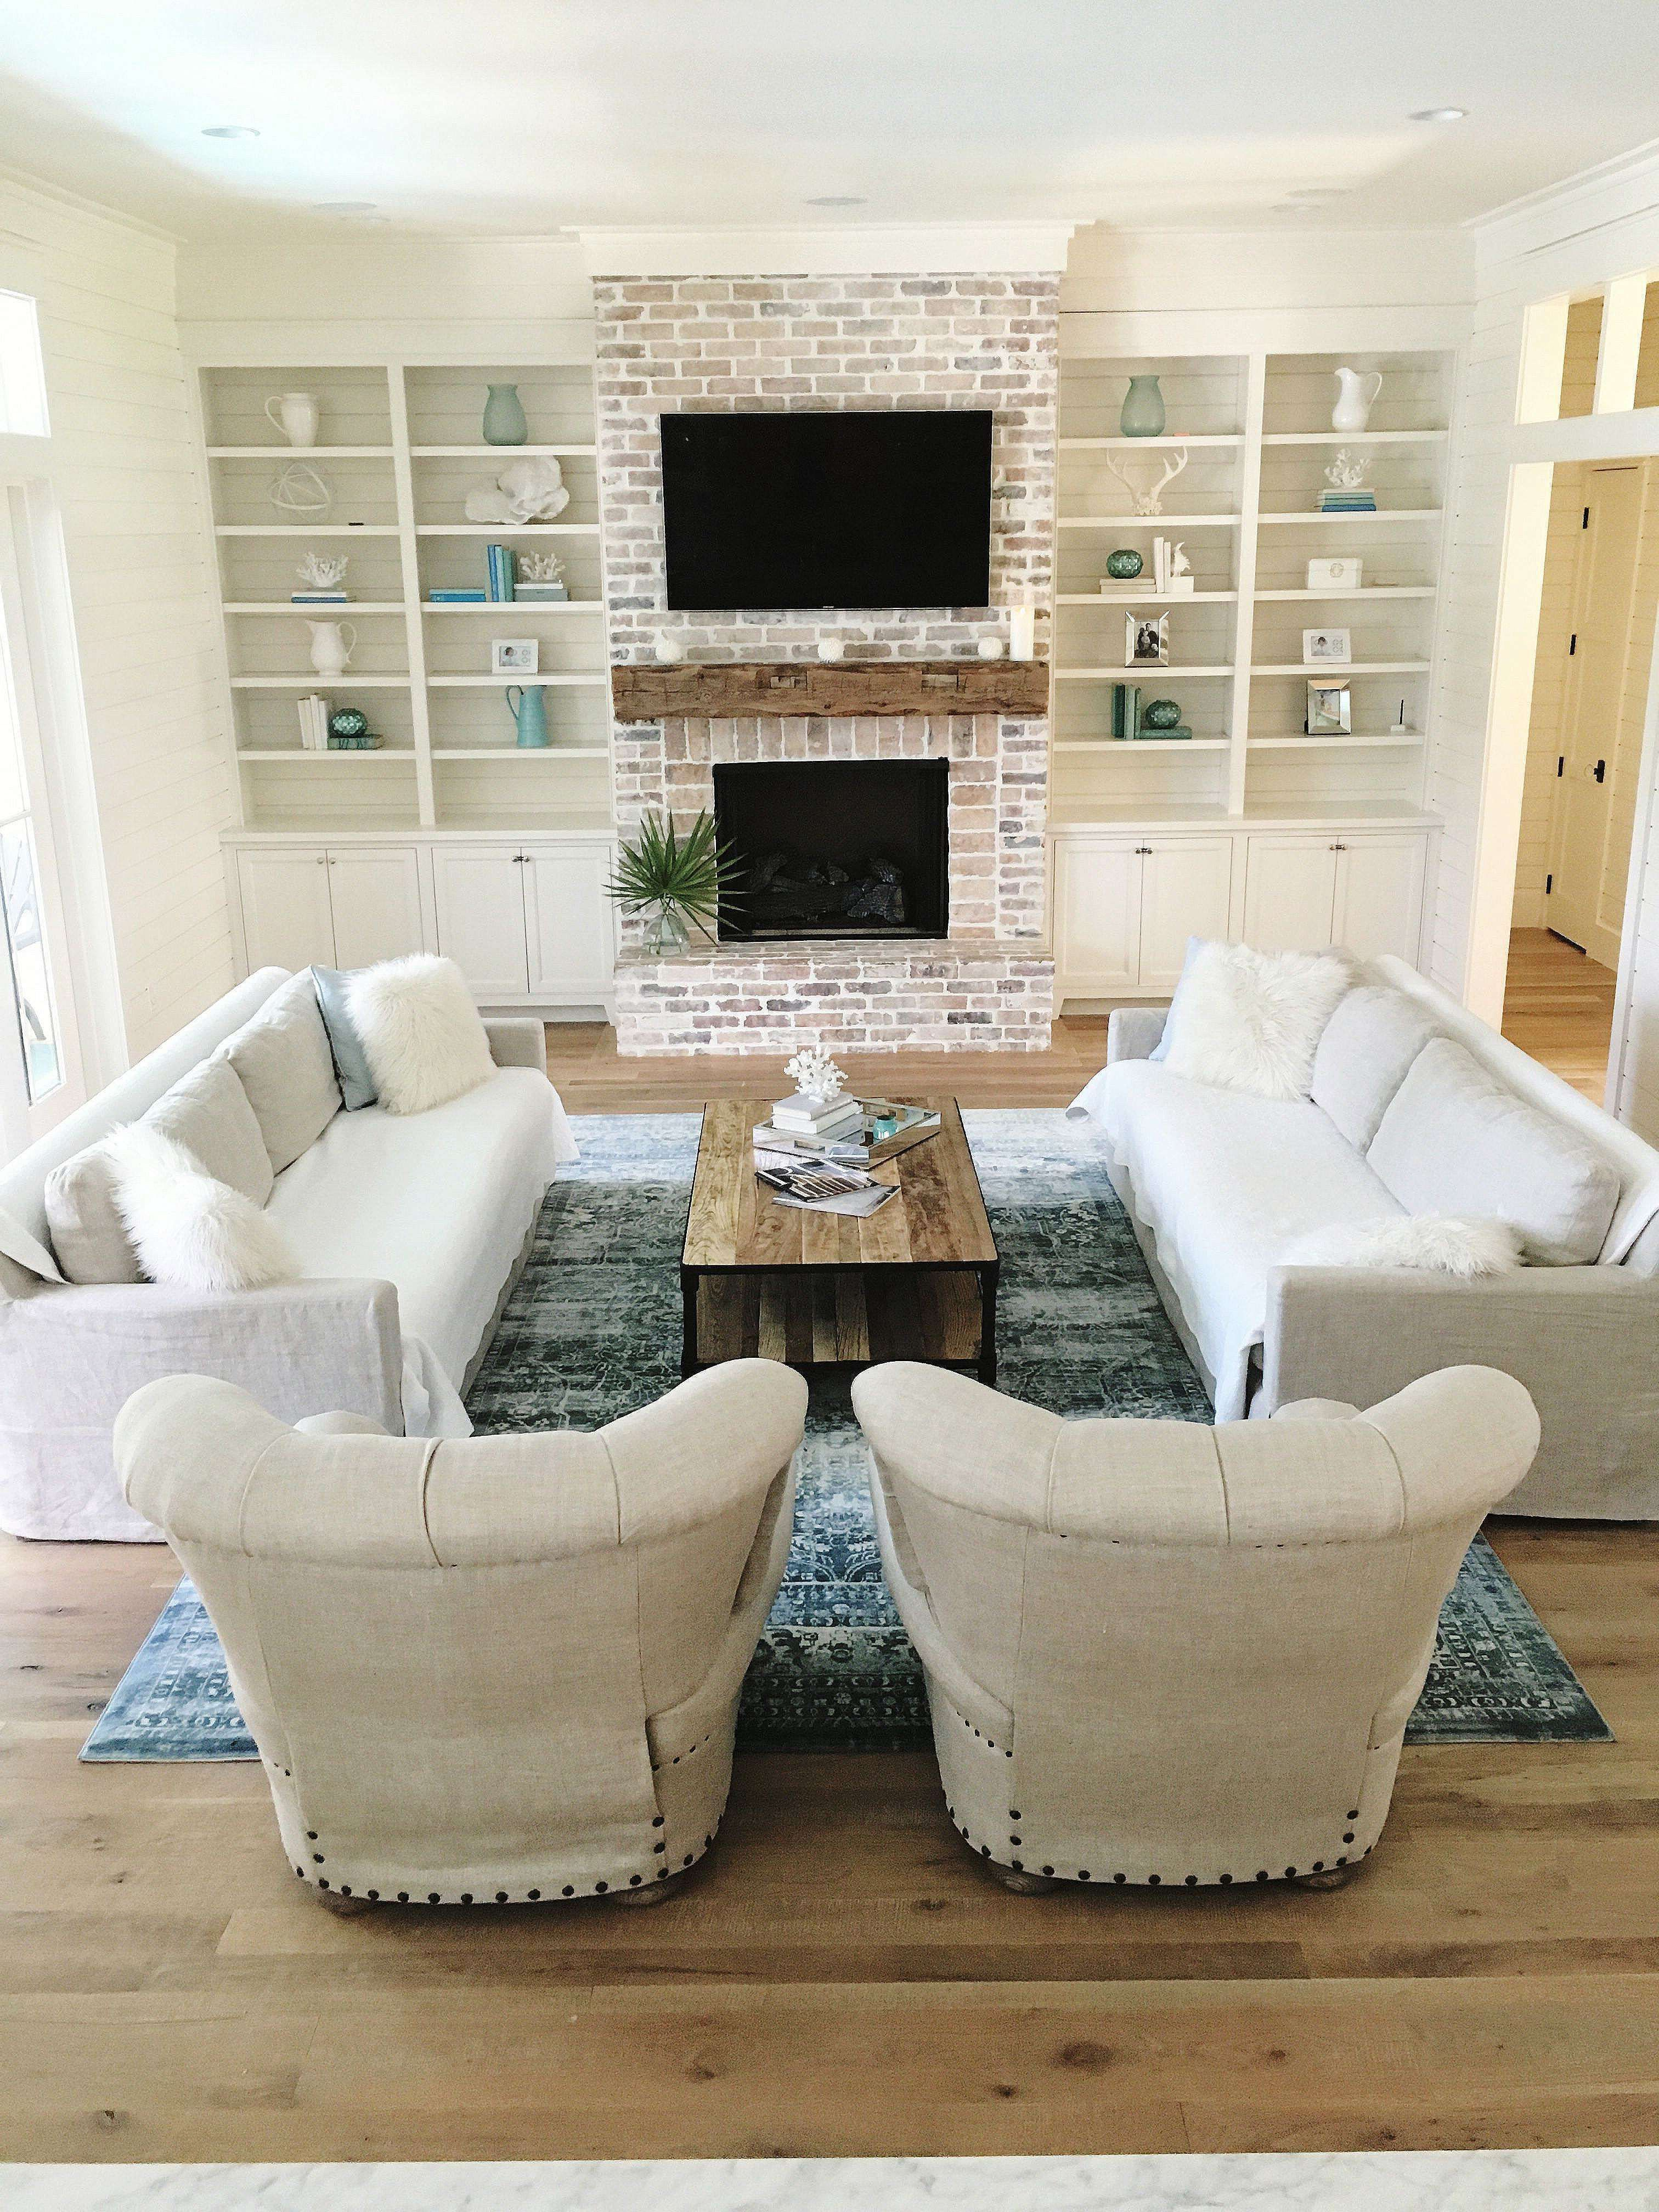 Best Of How to Decorate My Living Room | Ultimate Home decor ...